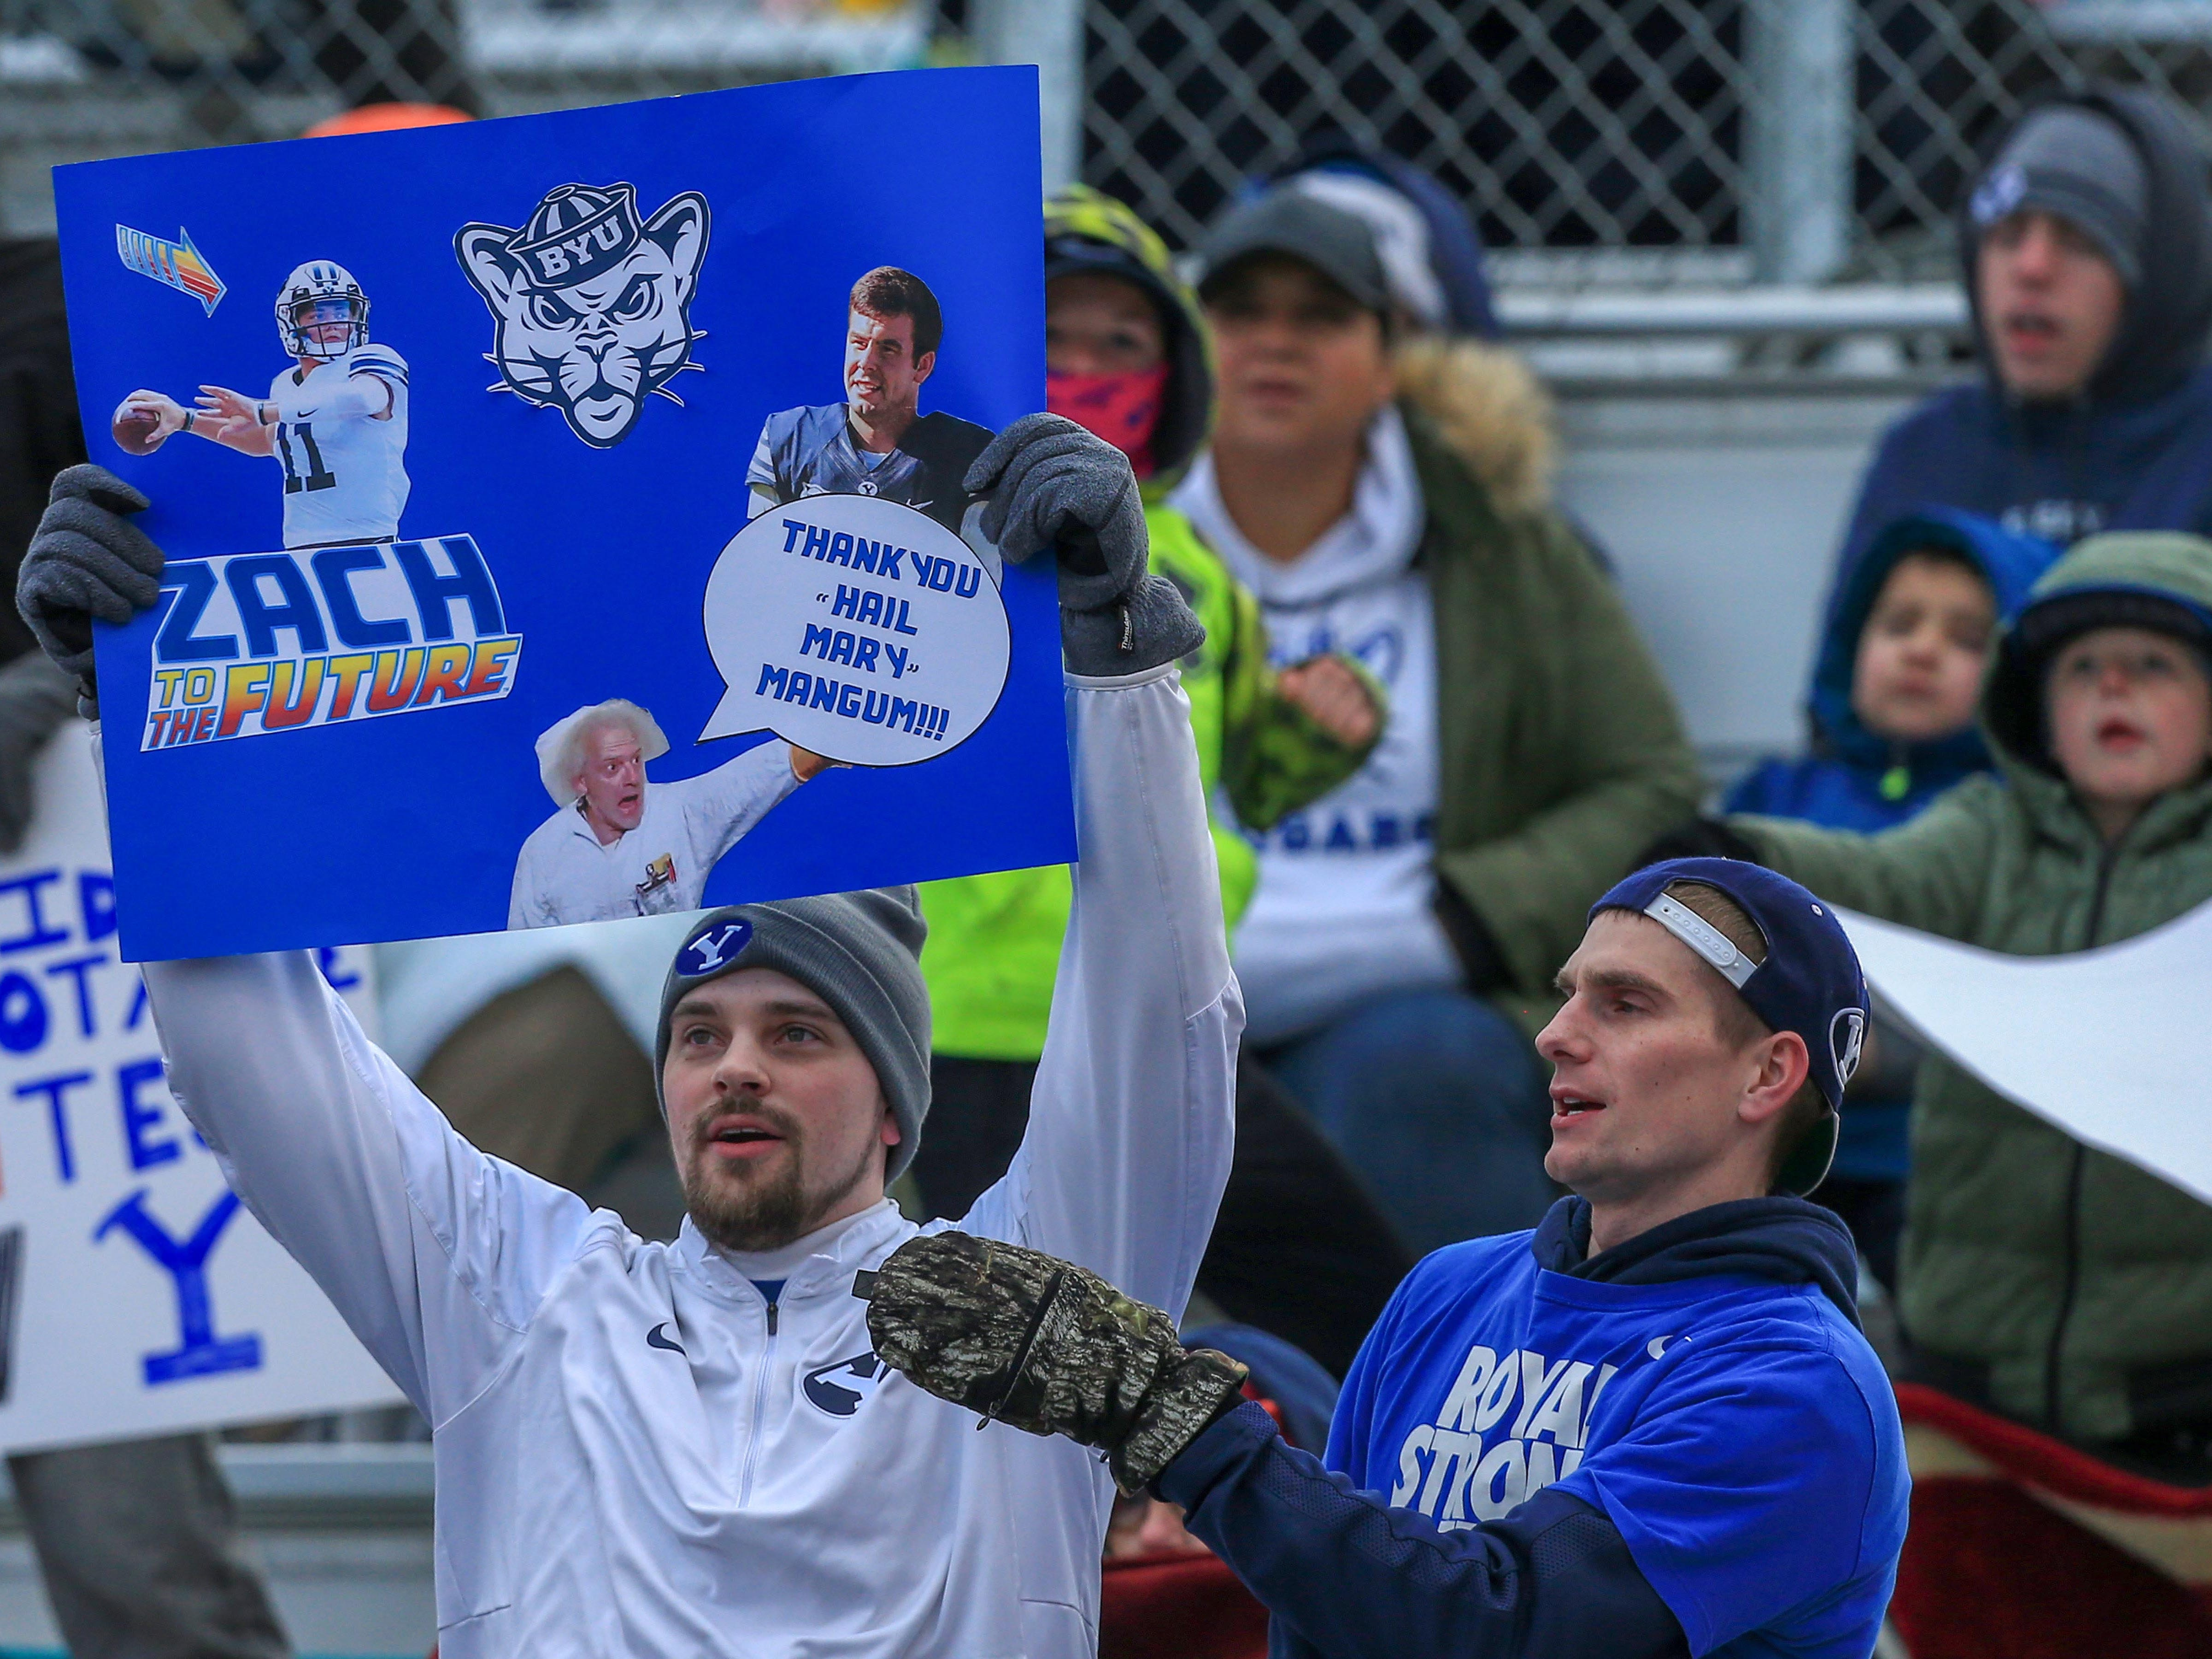 Dec 21, 2018; Boise, ID, United States; Brigham Young Cougars fans  during the first half  of play against the Western Michigan Broncos at the 2018 Potato Bowl at Albertsons Stadium.